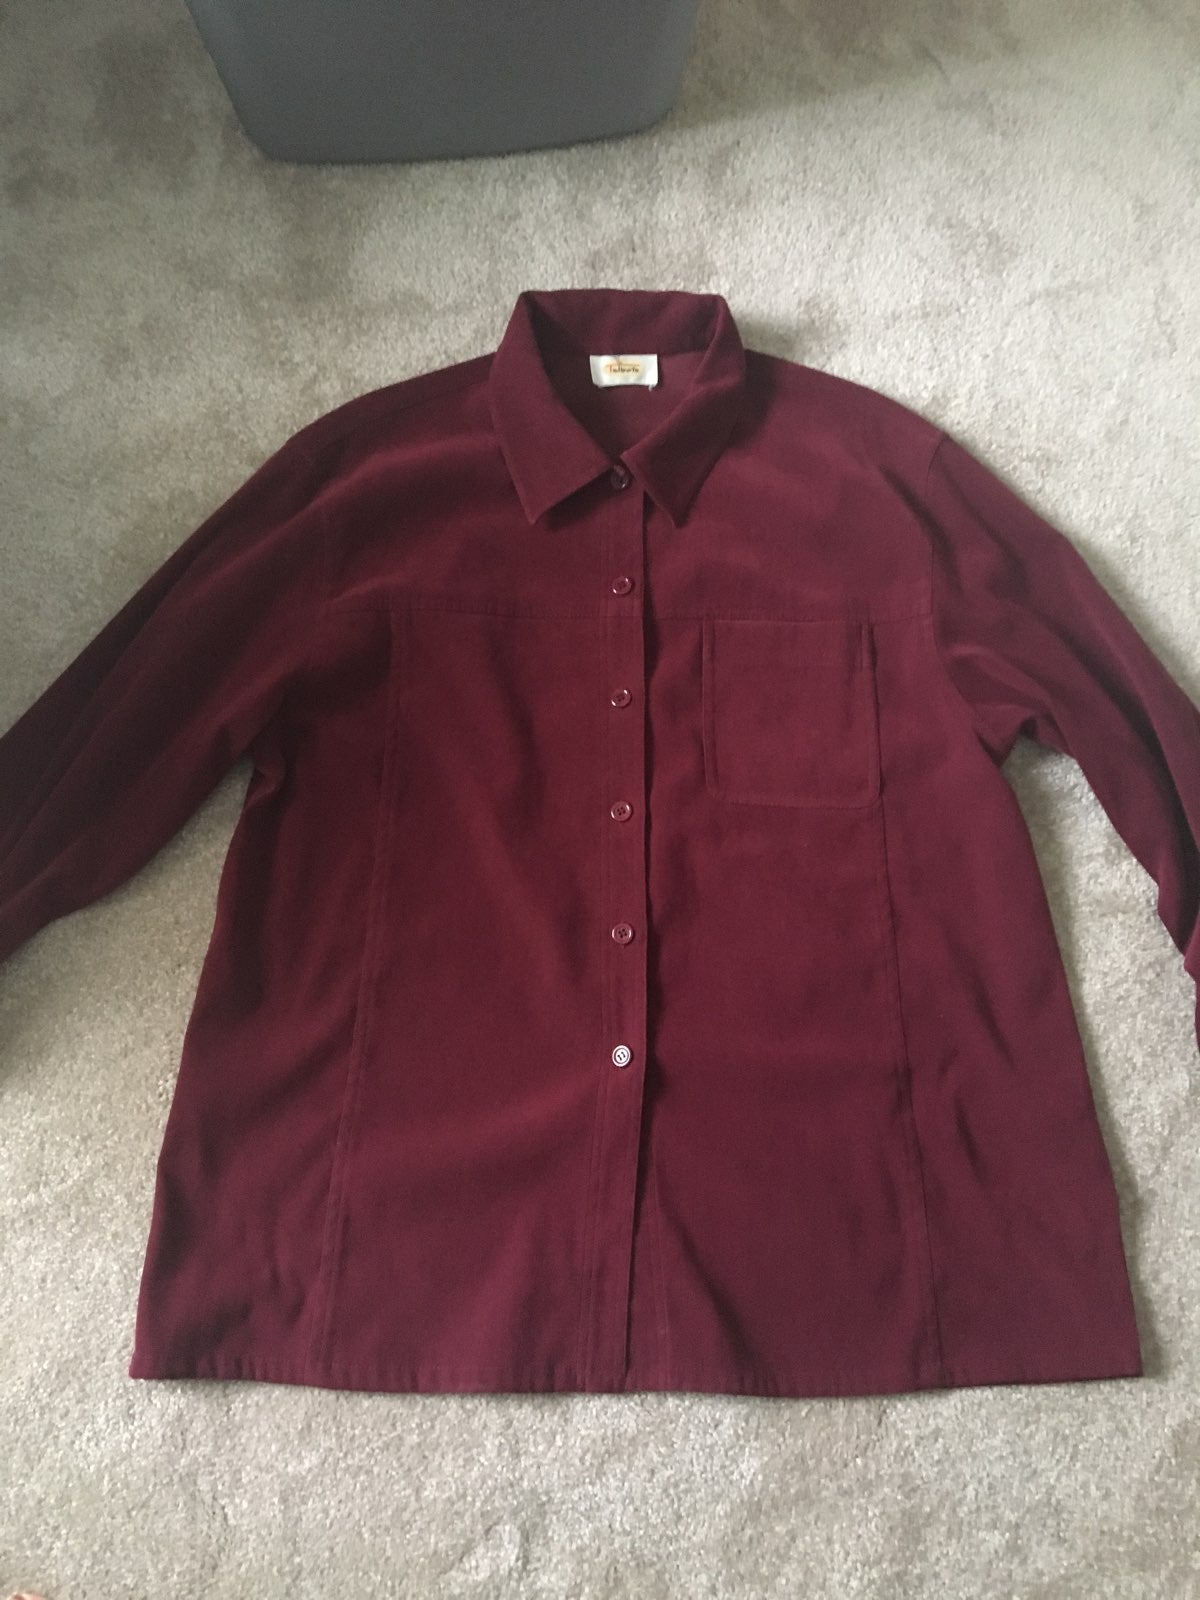 Talbots Button Down Shirt Or Jacket